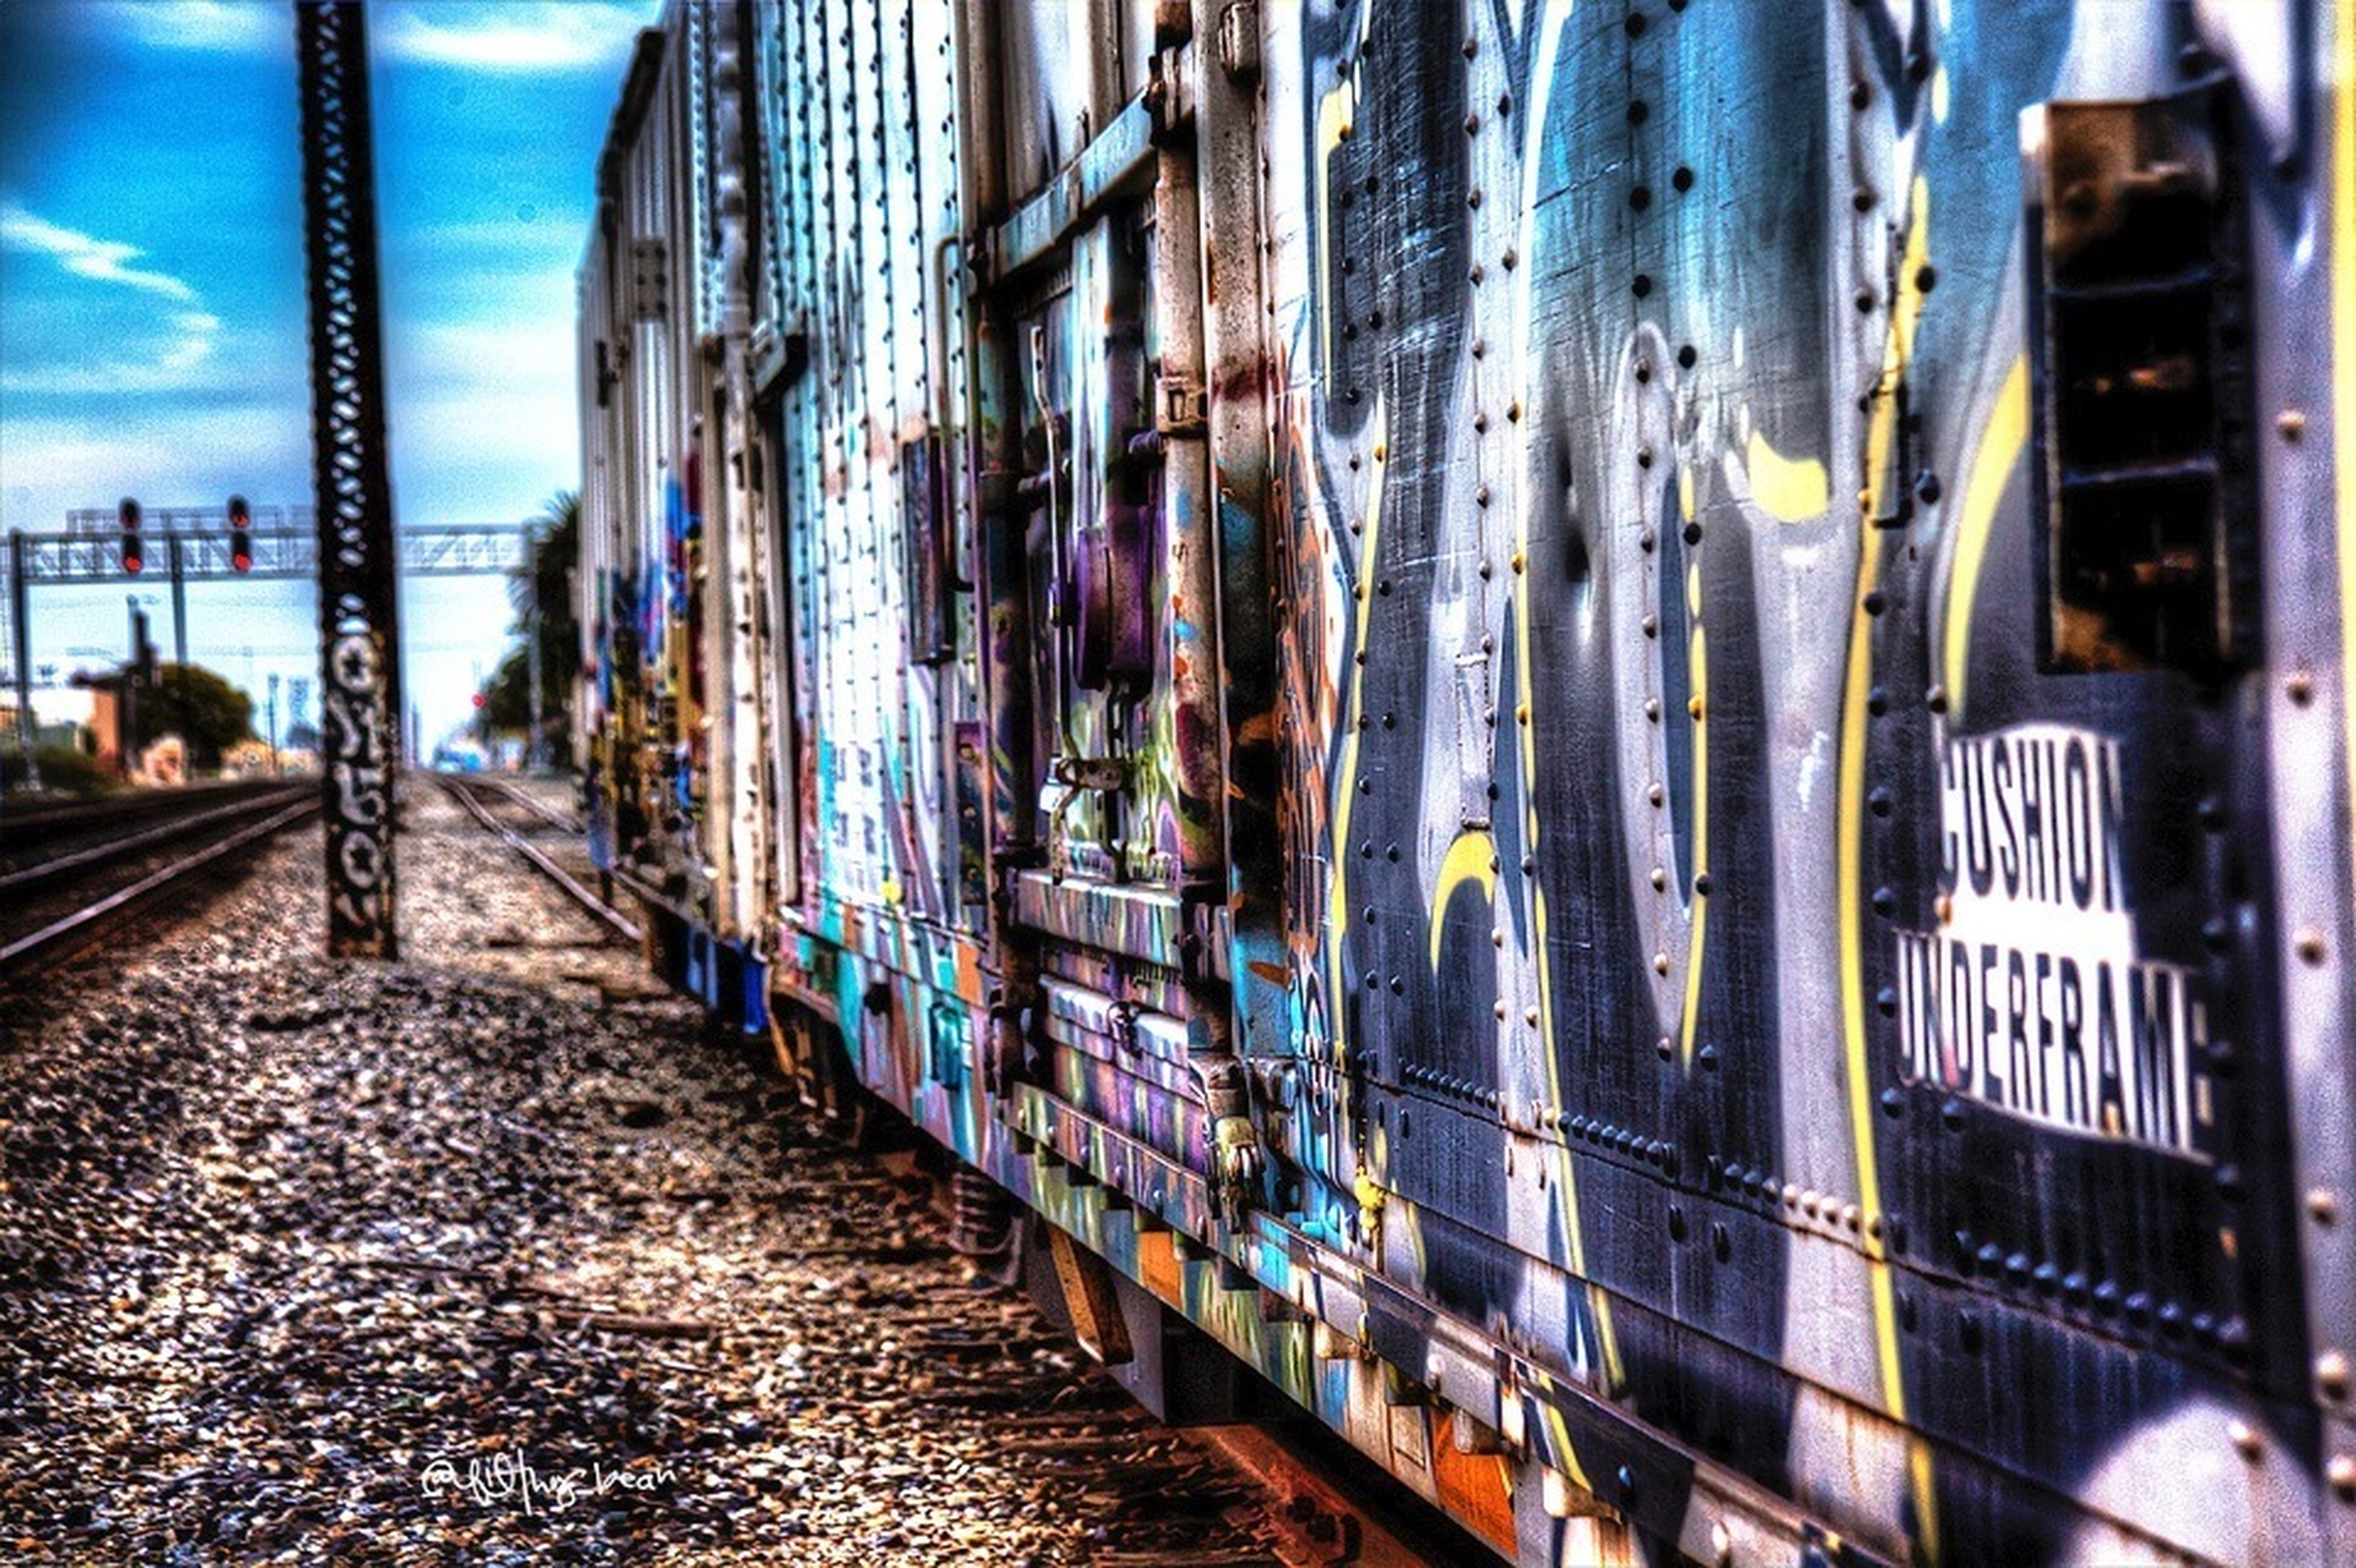 architecture, built structure, building exterior, transportation, city, graffiti, railroad track, public transportation, building, incidental people, rail transportation, glass - material, day, mode of transport, reflection, city life, railroad station platform, street, outdoors, diminishing perspective